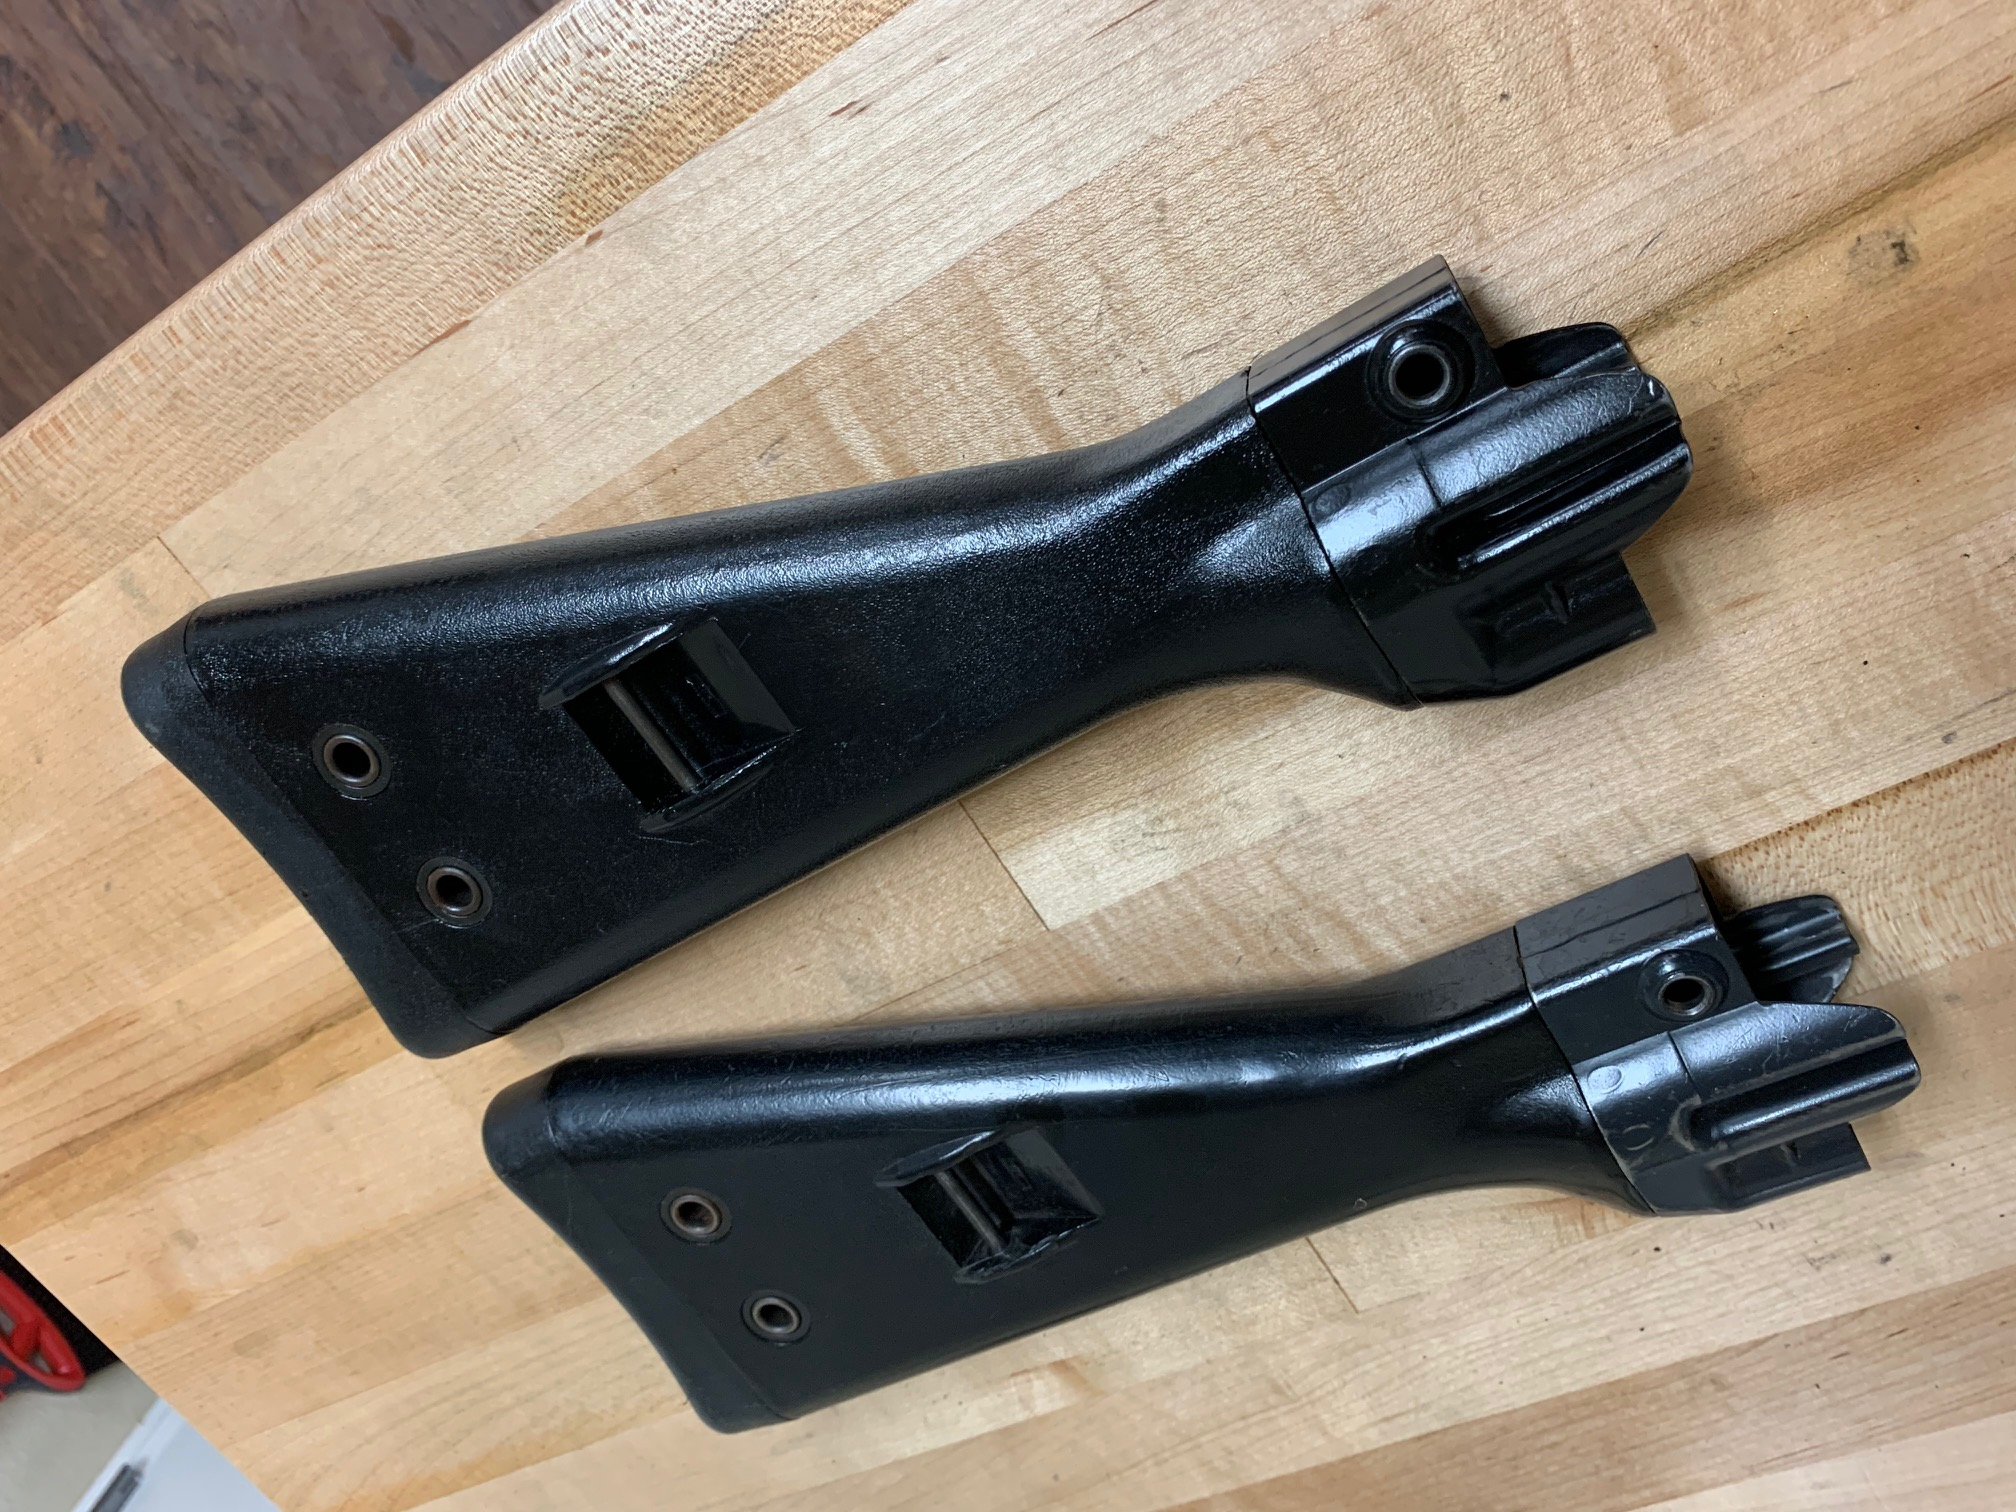 WTS: G36 magazines, MP5 carriers, trigger housings, stocks, pins, parts-img_0404.jpg